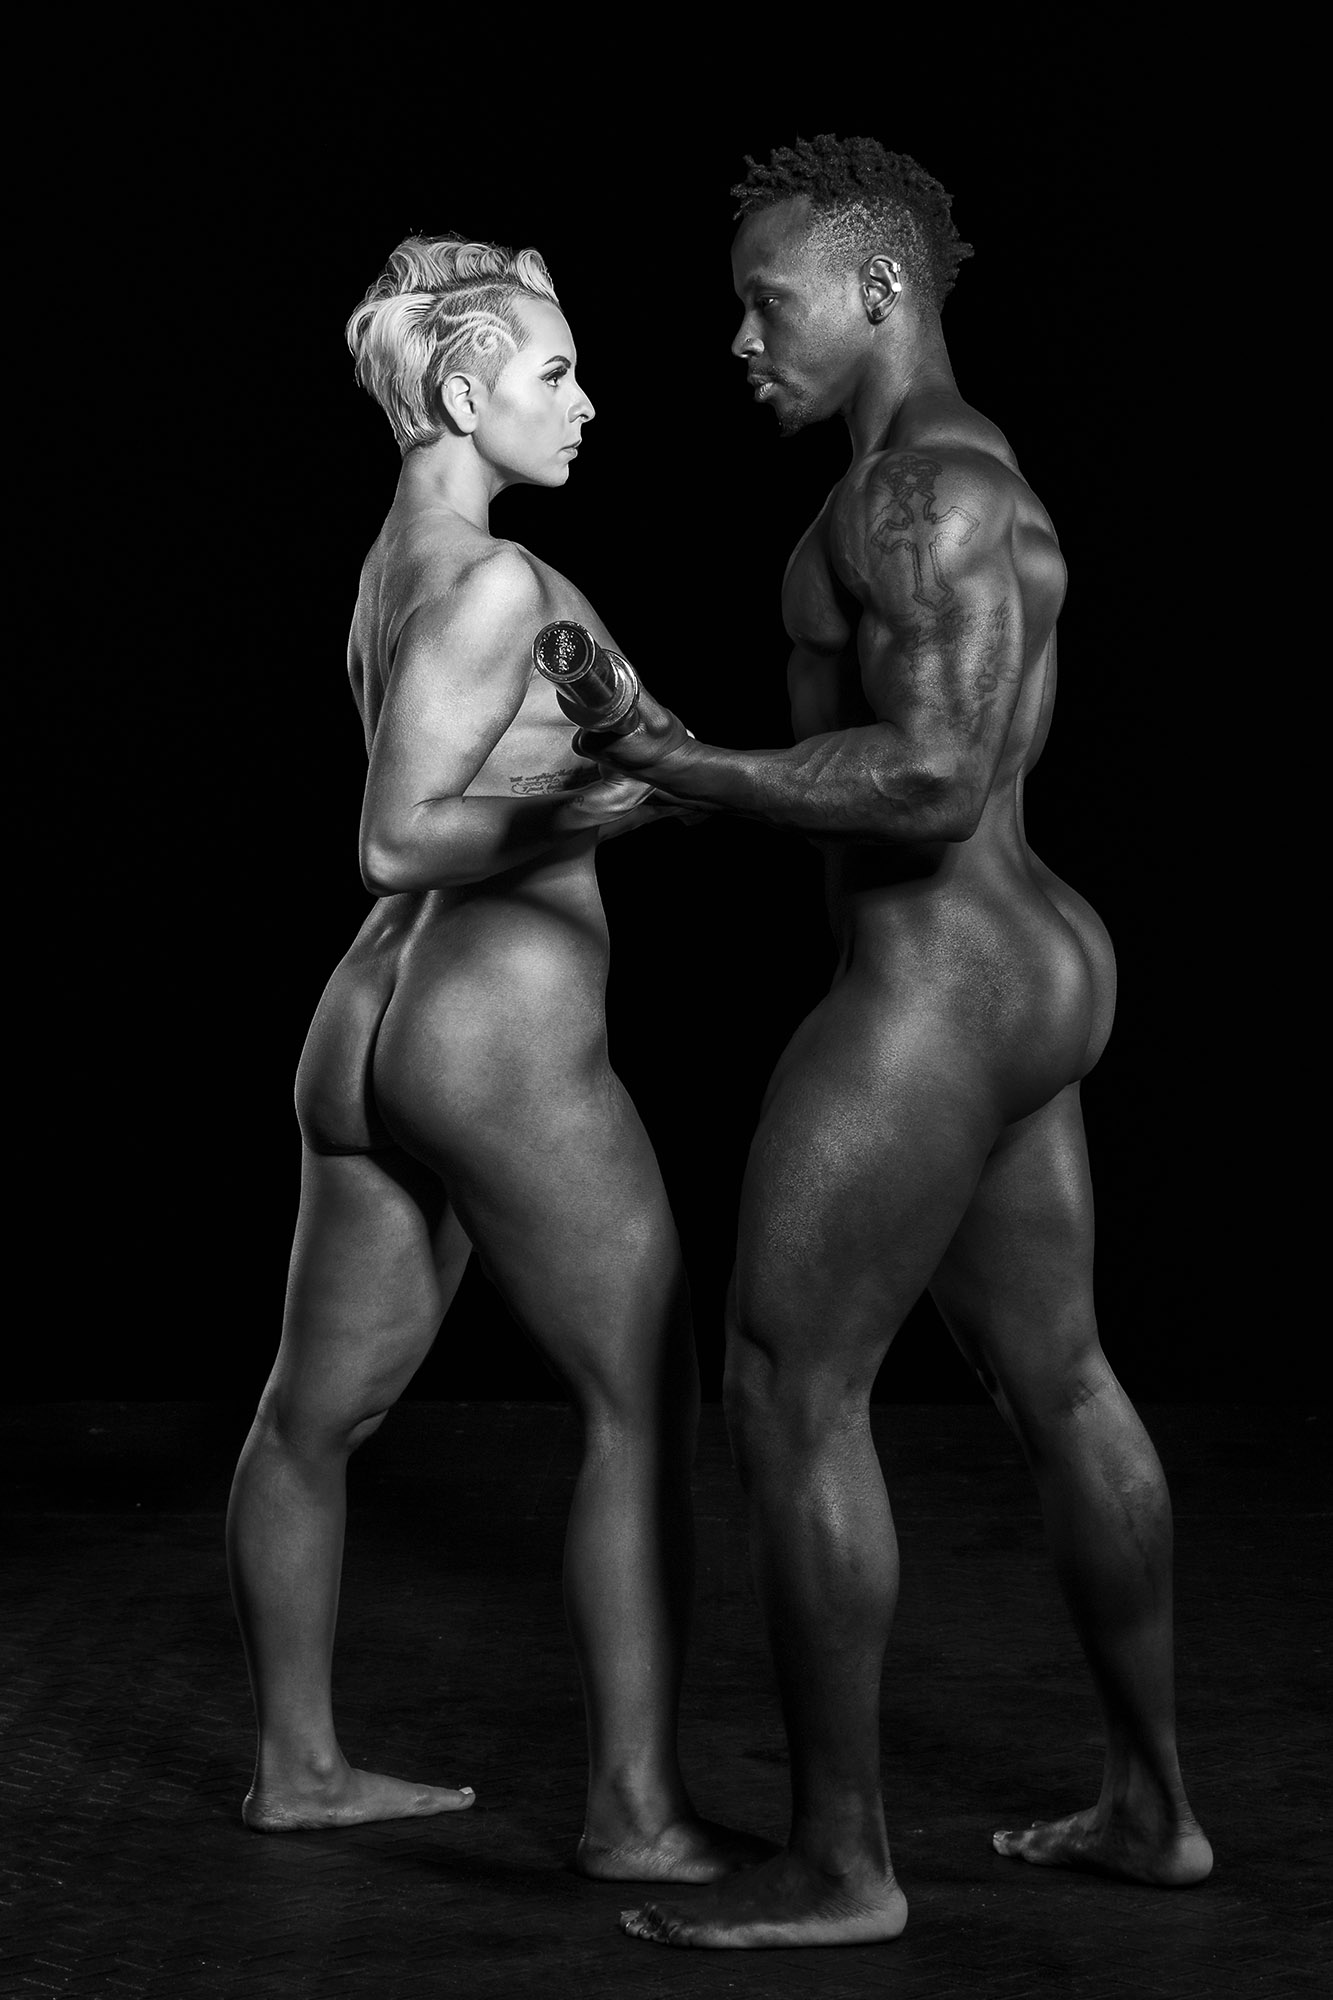 Nude Athletic Couples photo 4